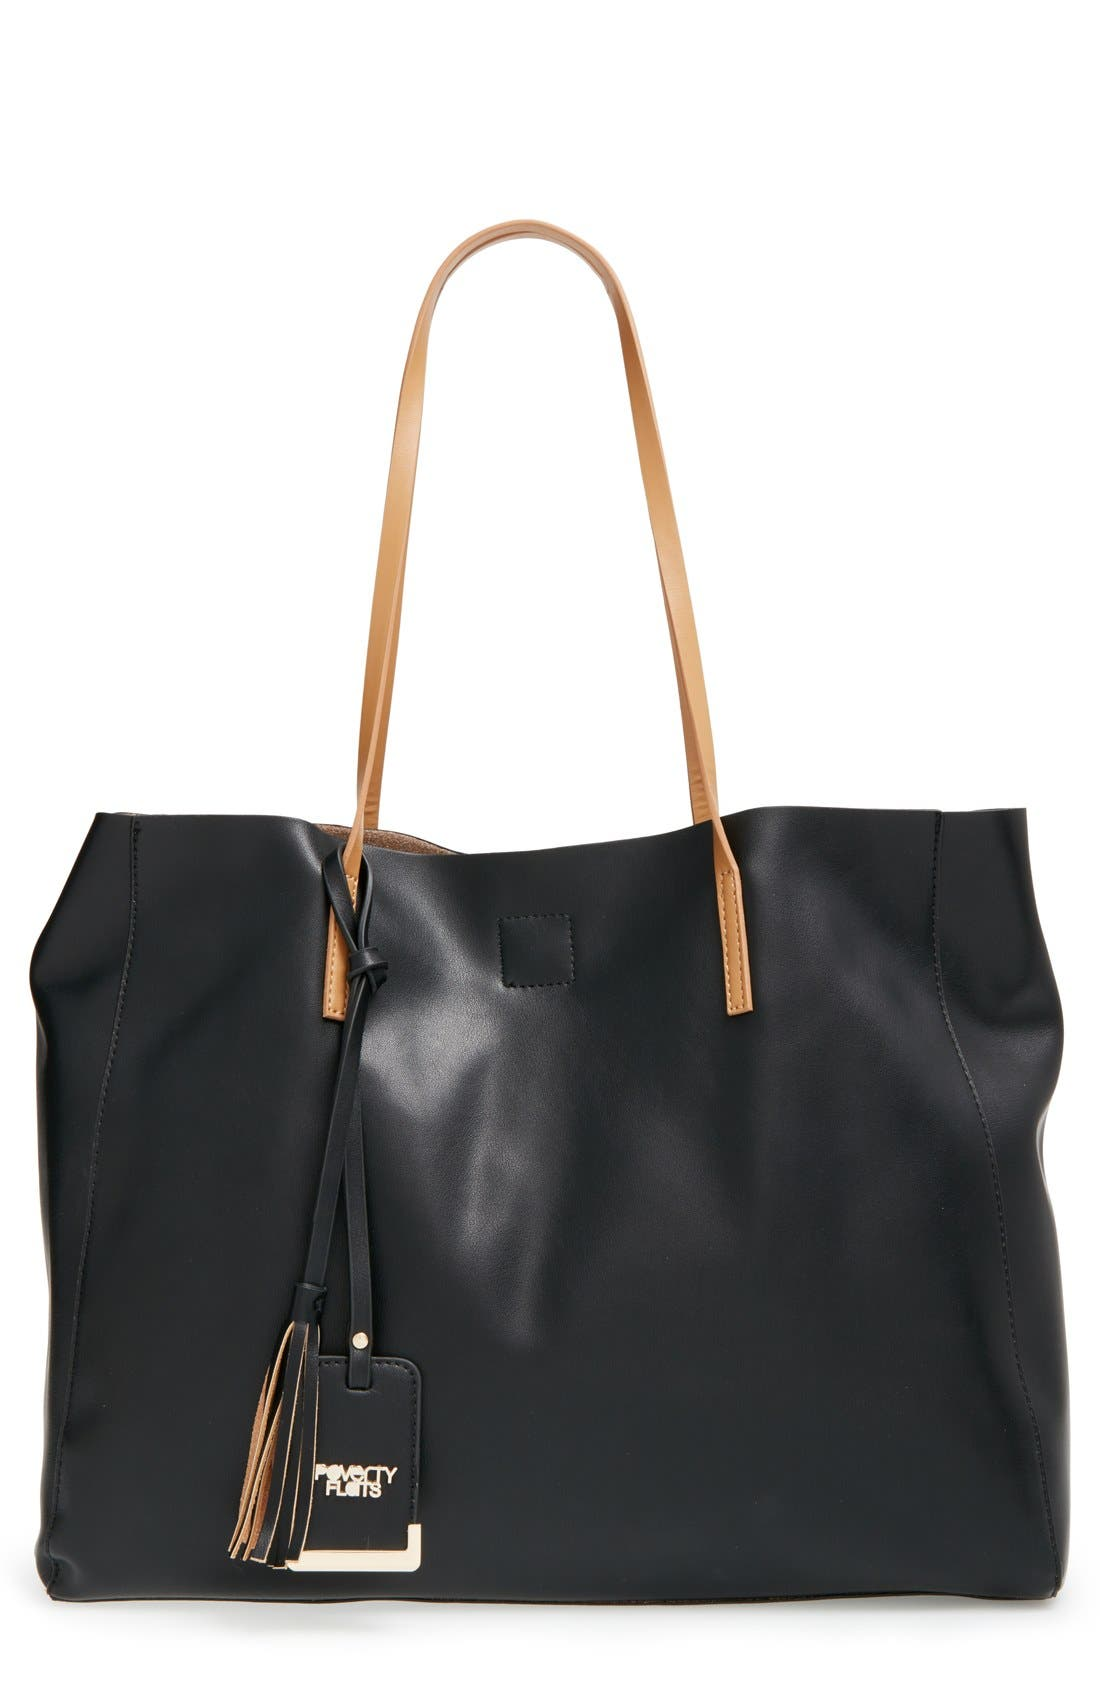 Alternate Image 1 Selected - POVERTY FLATS by rian 'Colorful' Faux Leather Shopper